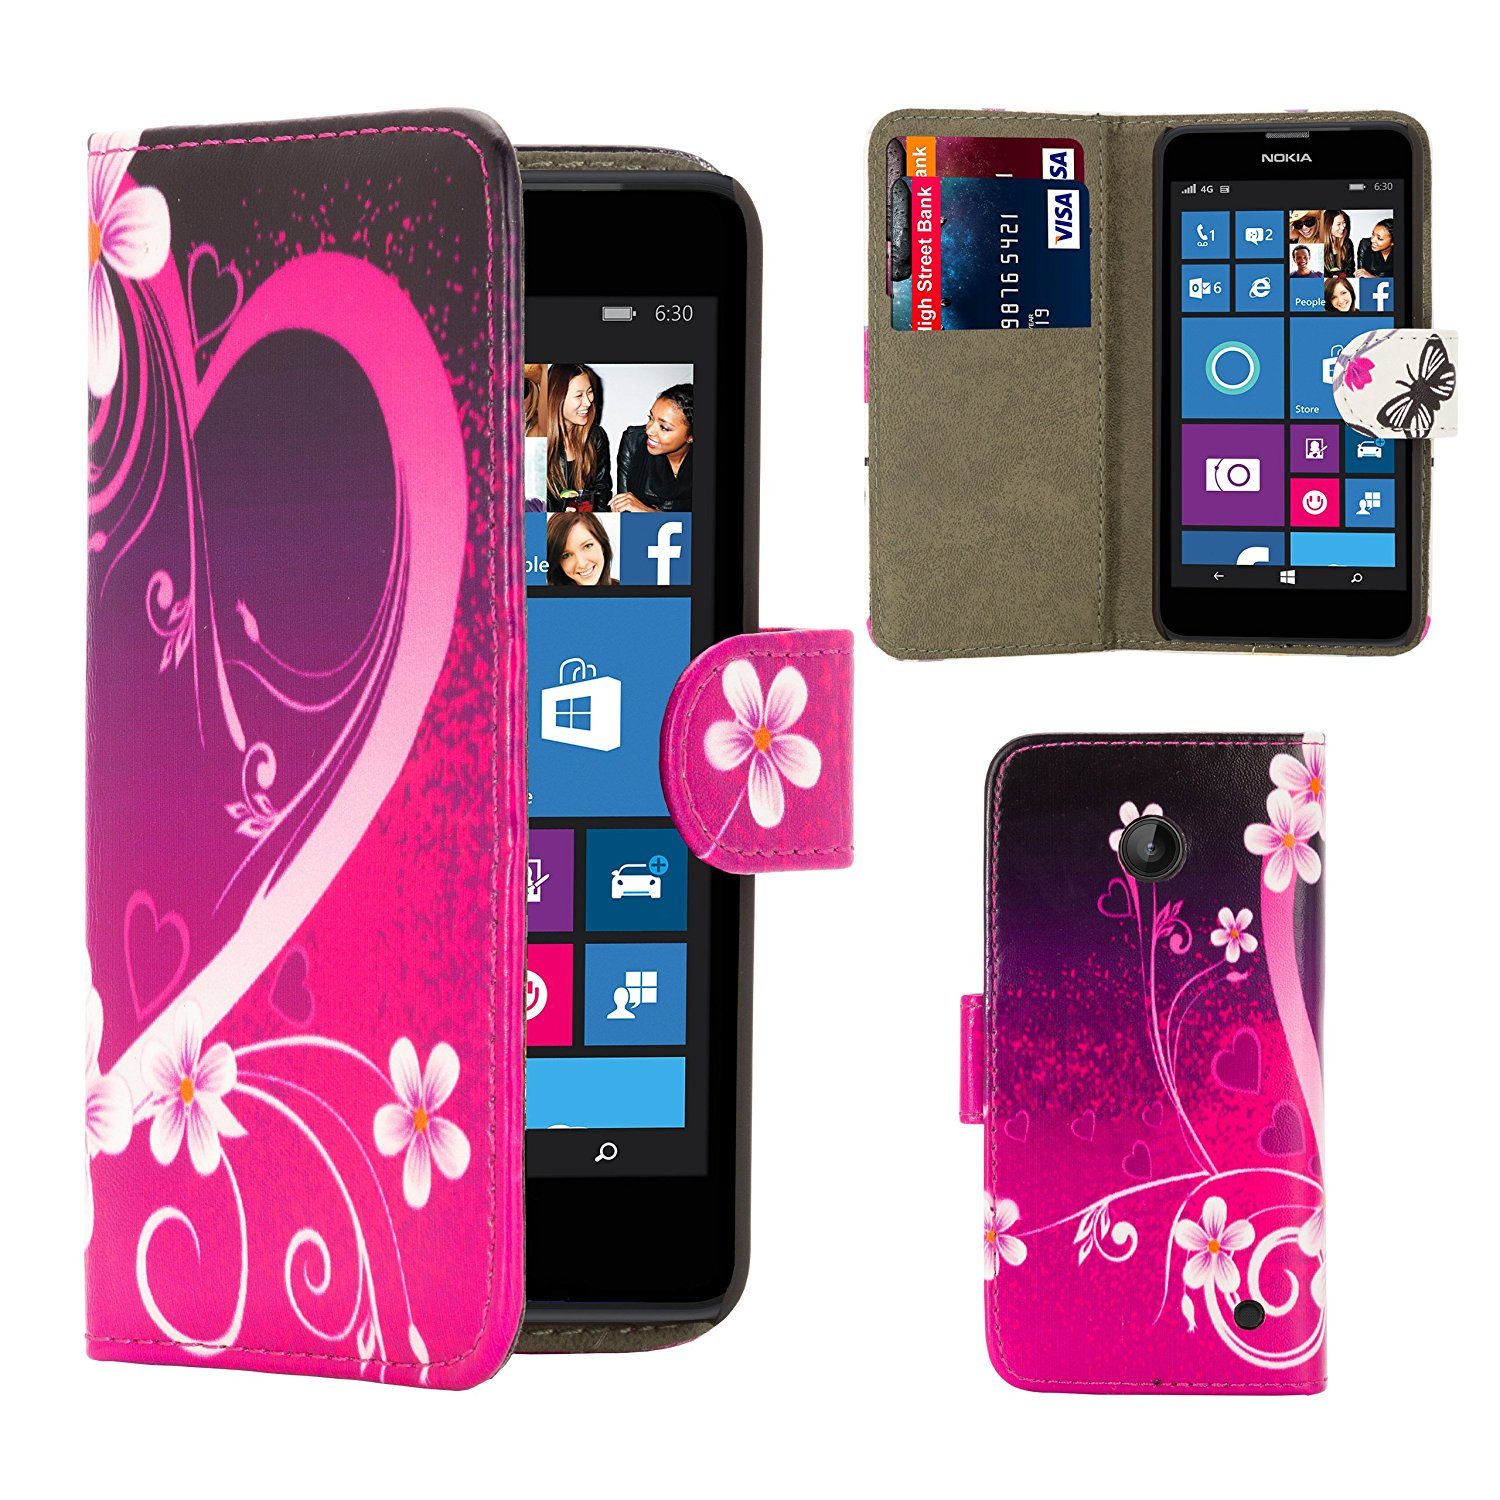 32nd® Design book wallet PU leather case cover for Microsoft Lumia 640, including screen protector and cloth - Love Heart